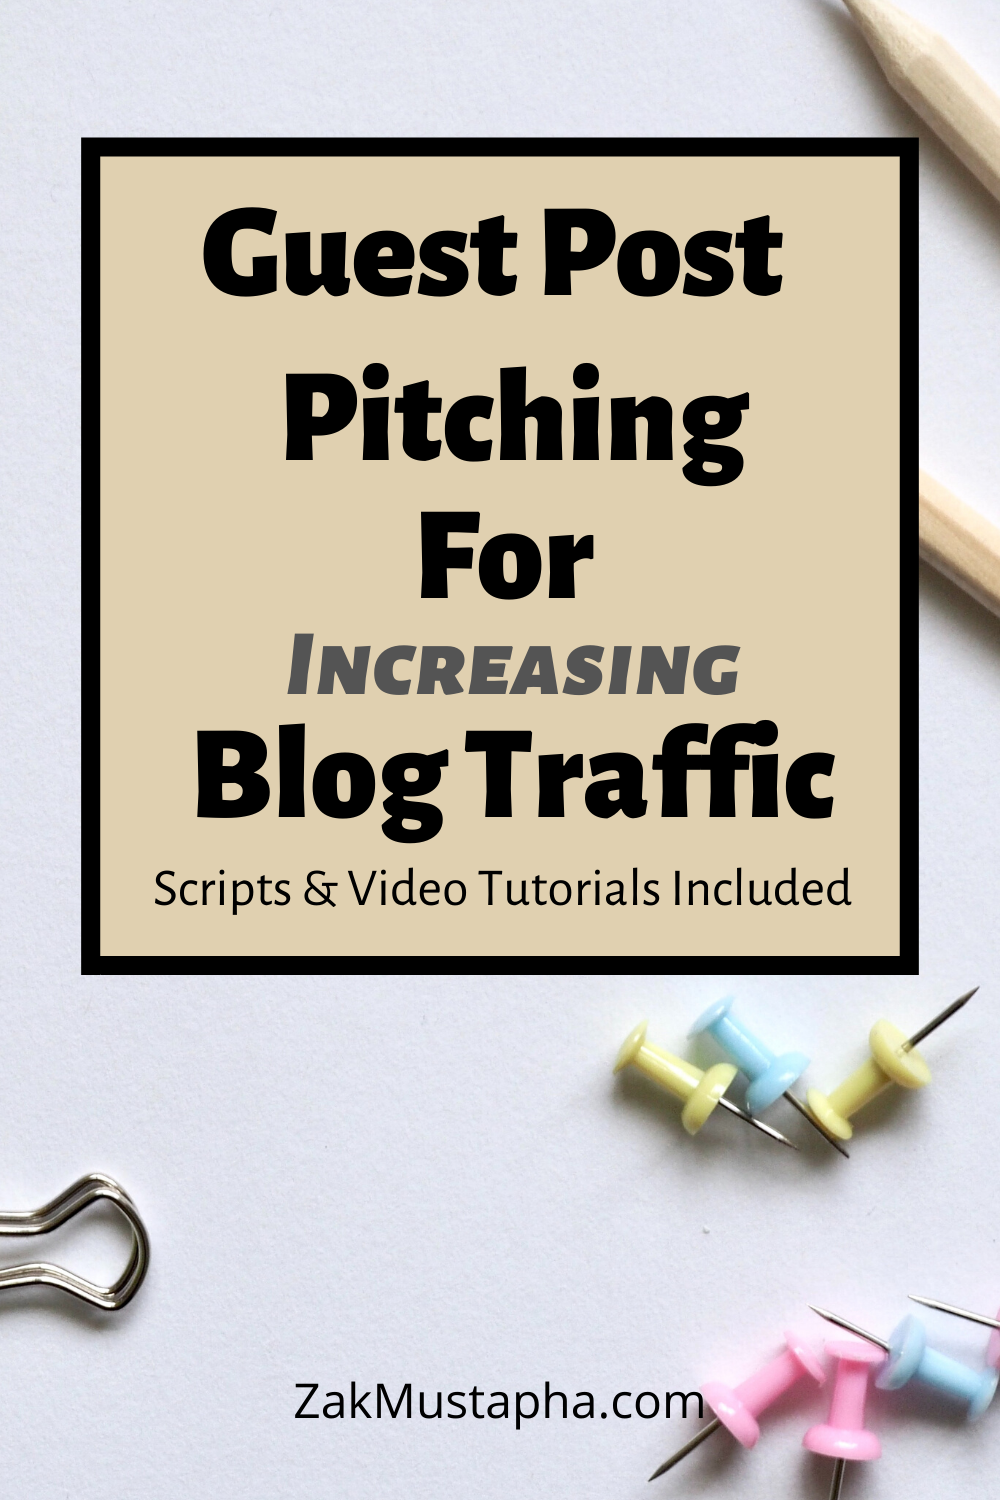 Guest Post Pitching for Increasing Blog Traffic